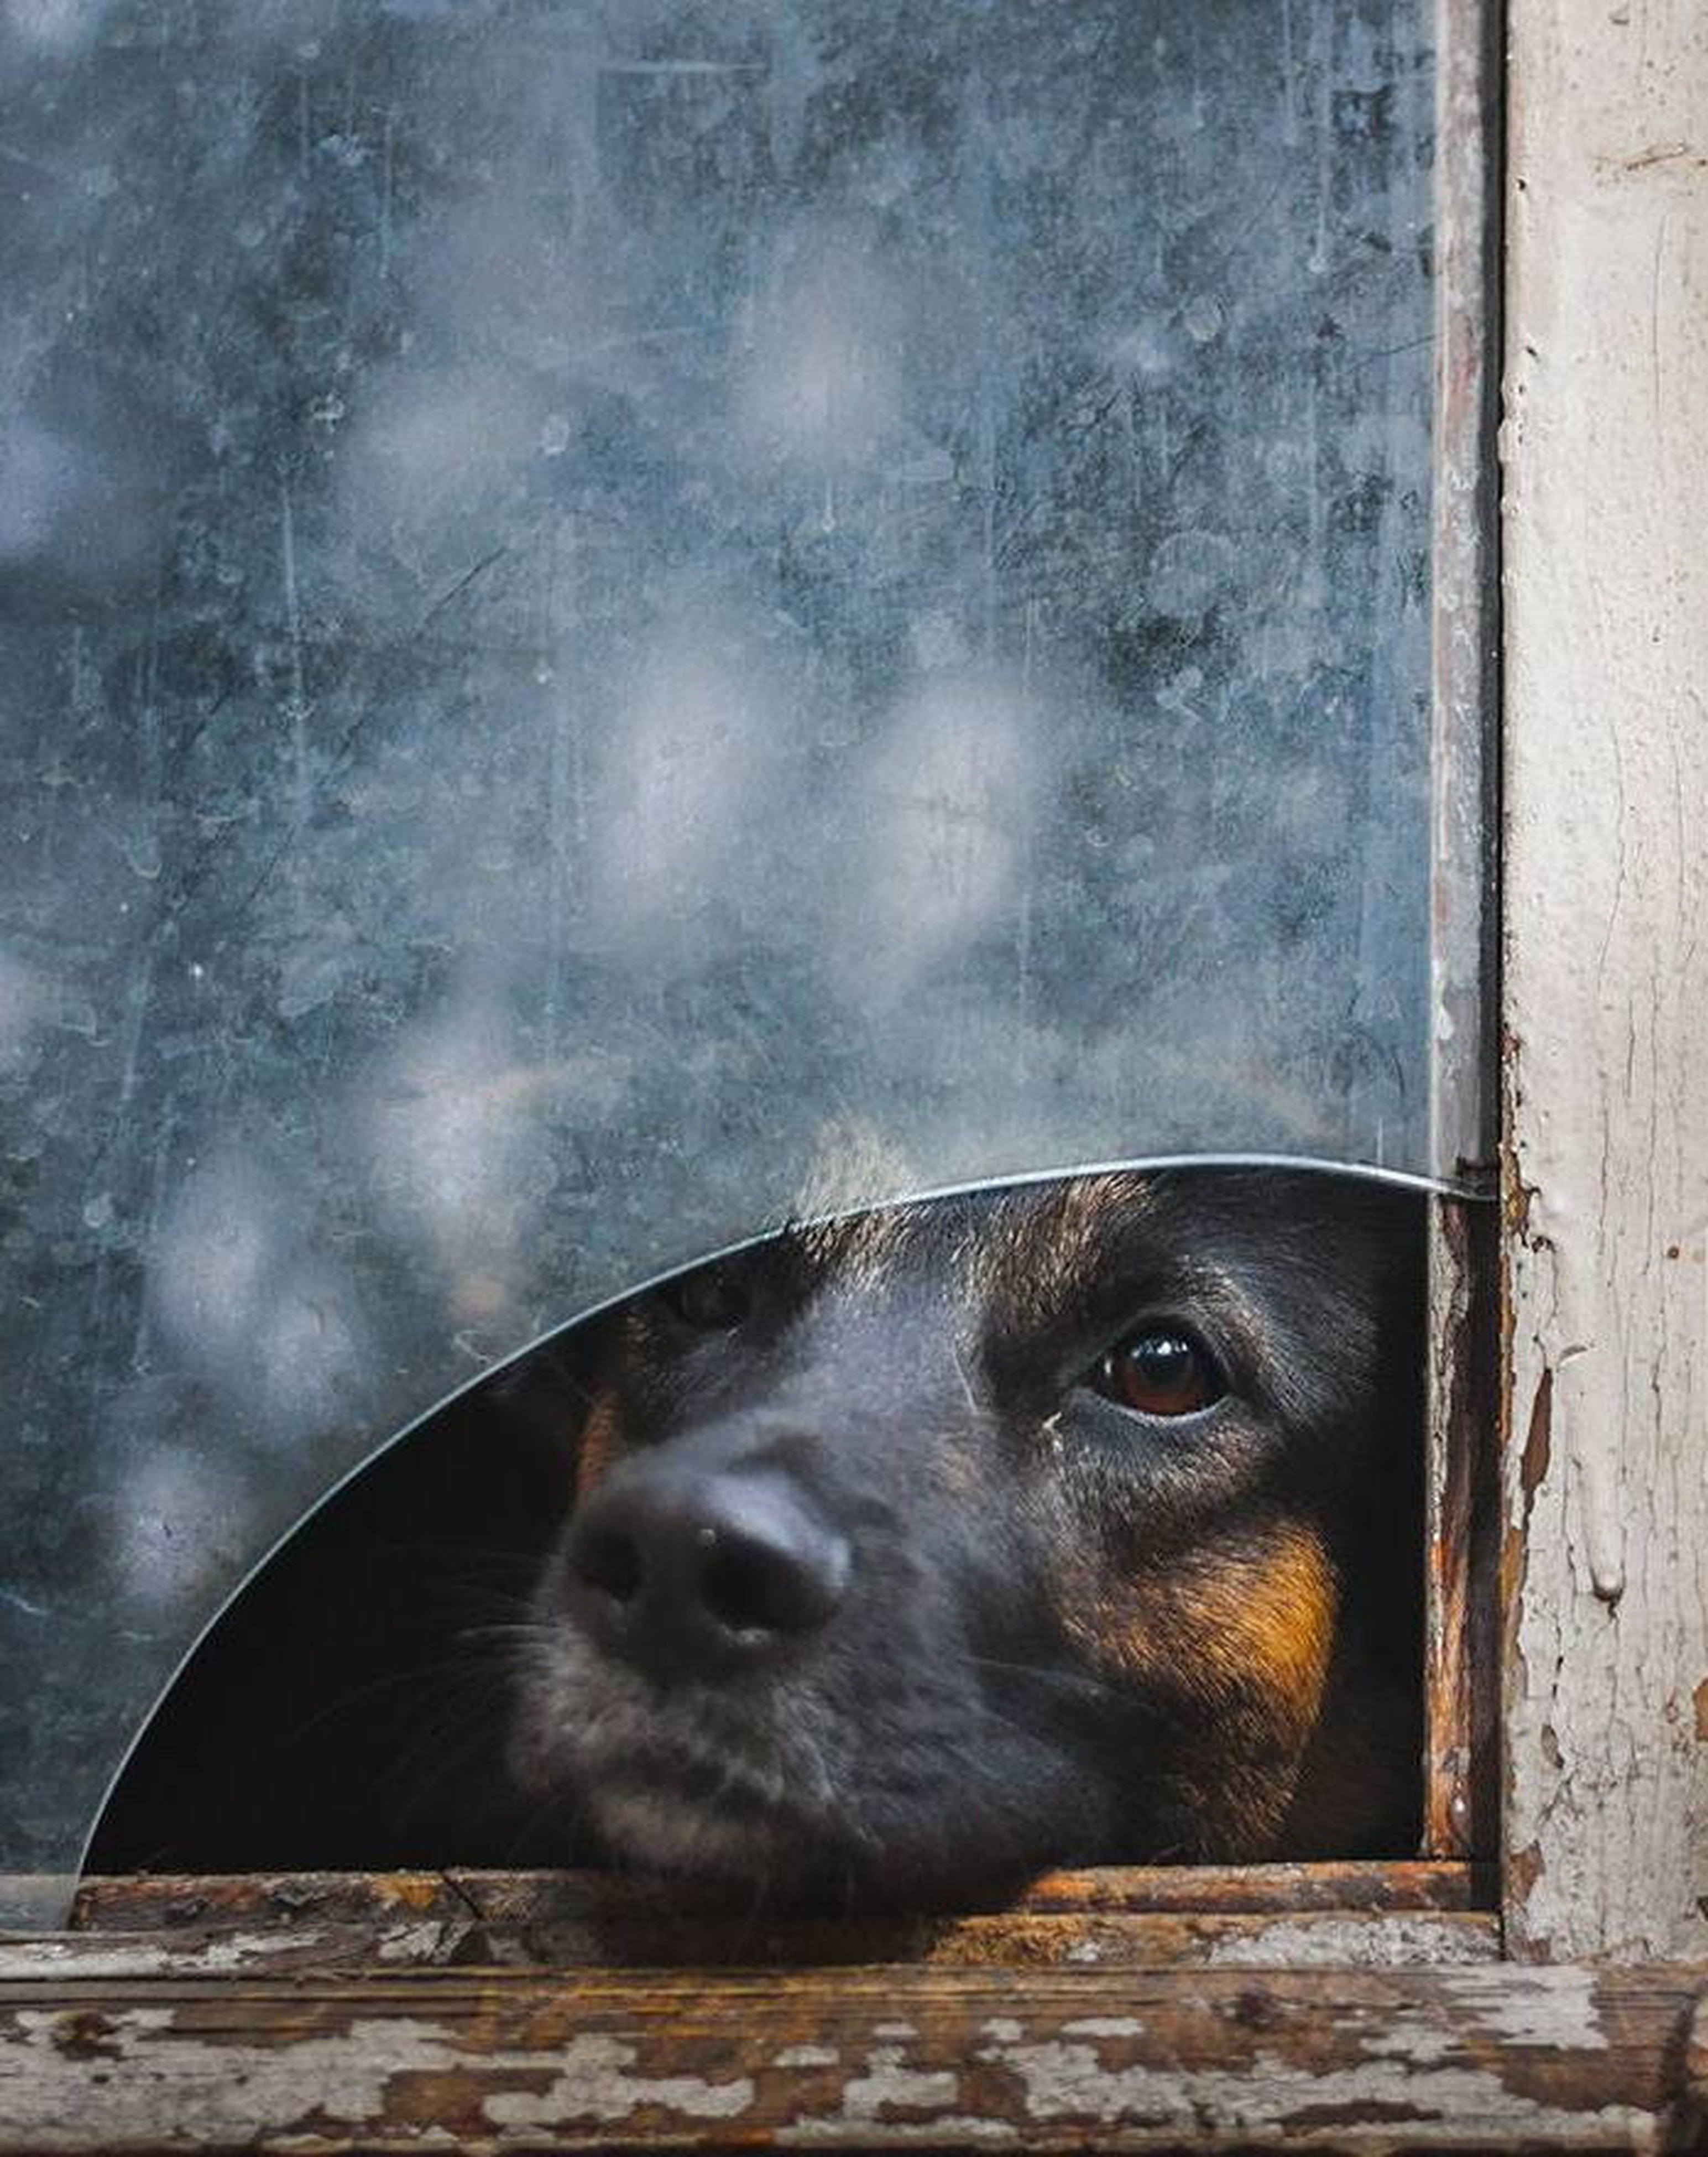 animal themes, one animal, mammal, domestic animals, pets, dog, portrait, looking at camera, animal head, close-up, outdoors, built structure, day, animal body part, no people, zoology, front view, wall - building feature, animal eye